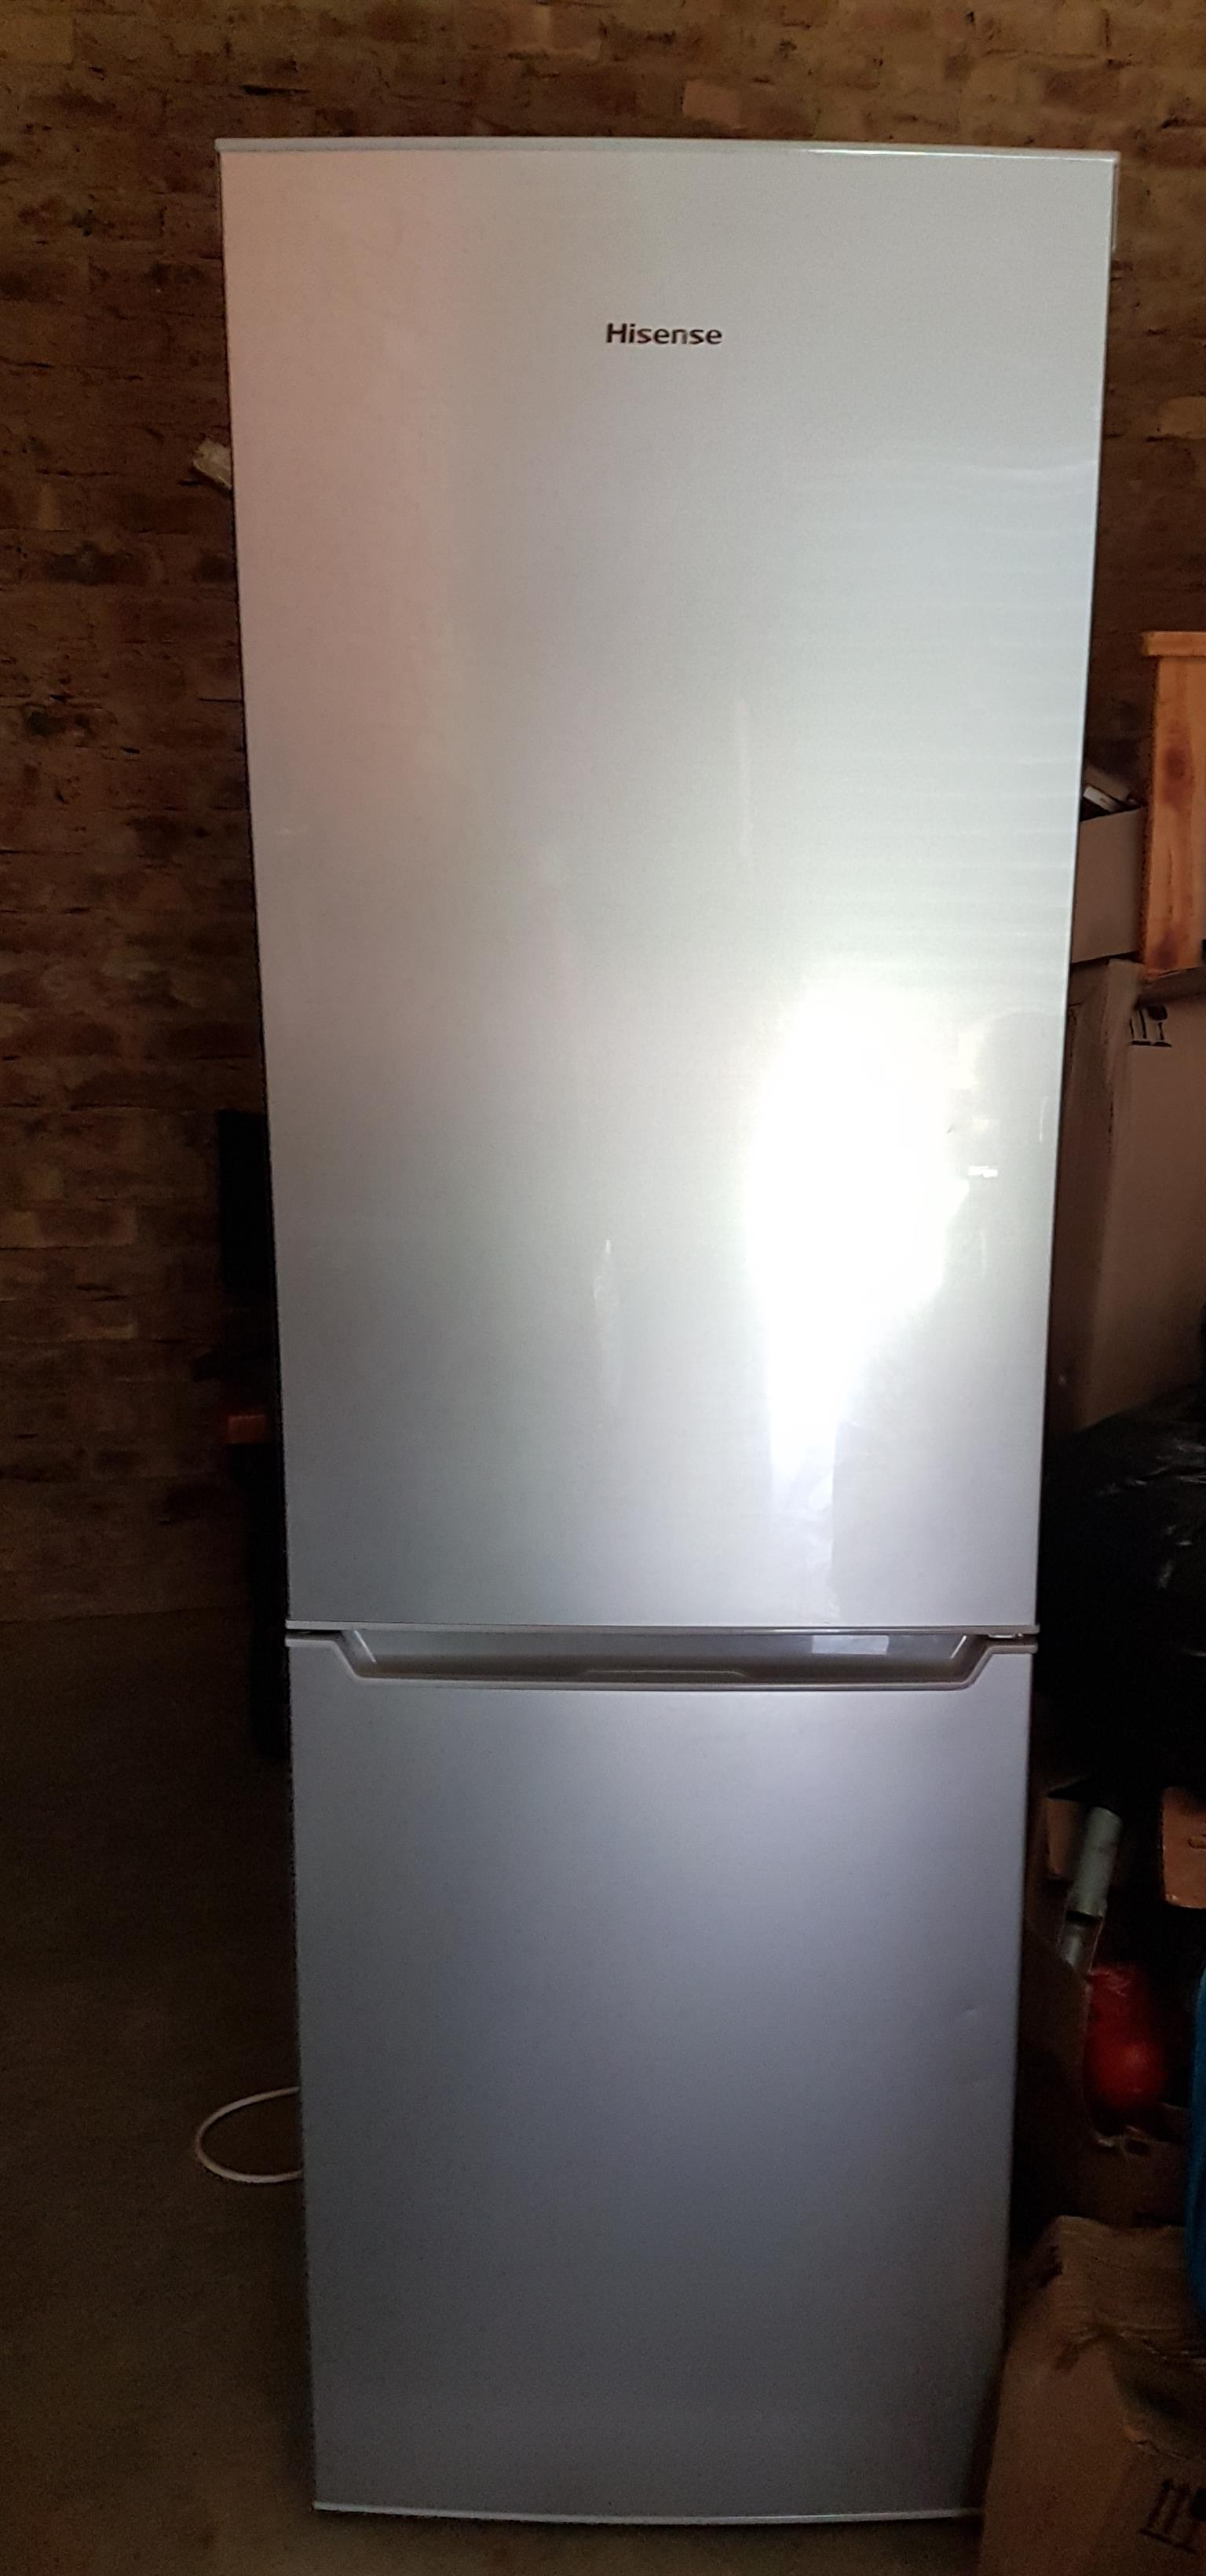 HISENSE FRIDGE / FREEZER COMBINATION - GREAT CONDITION!